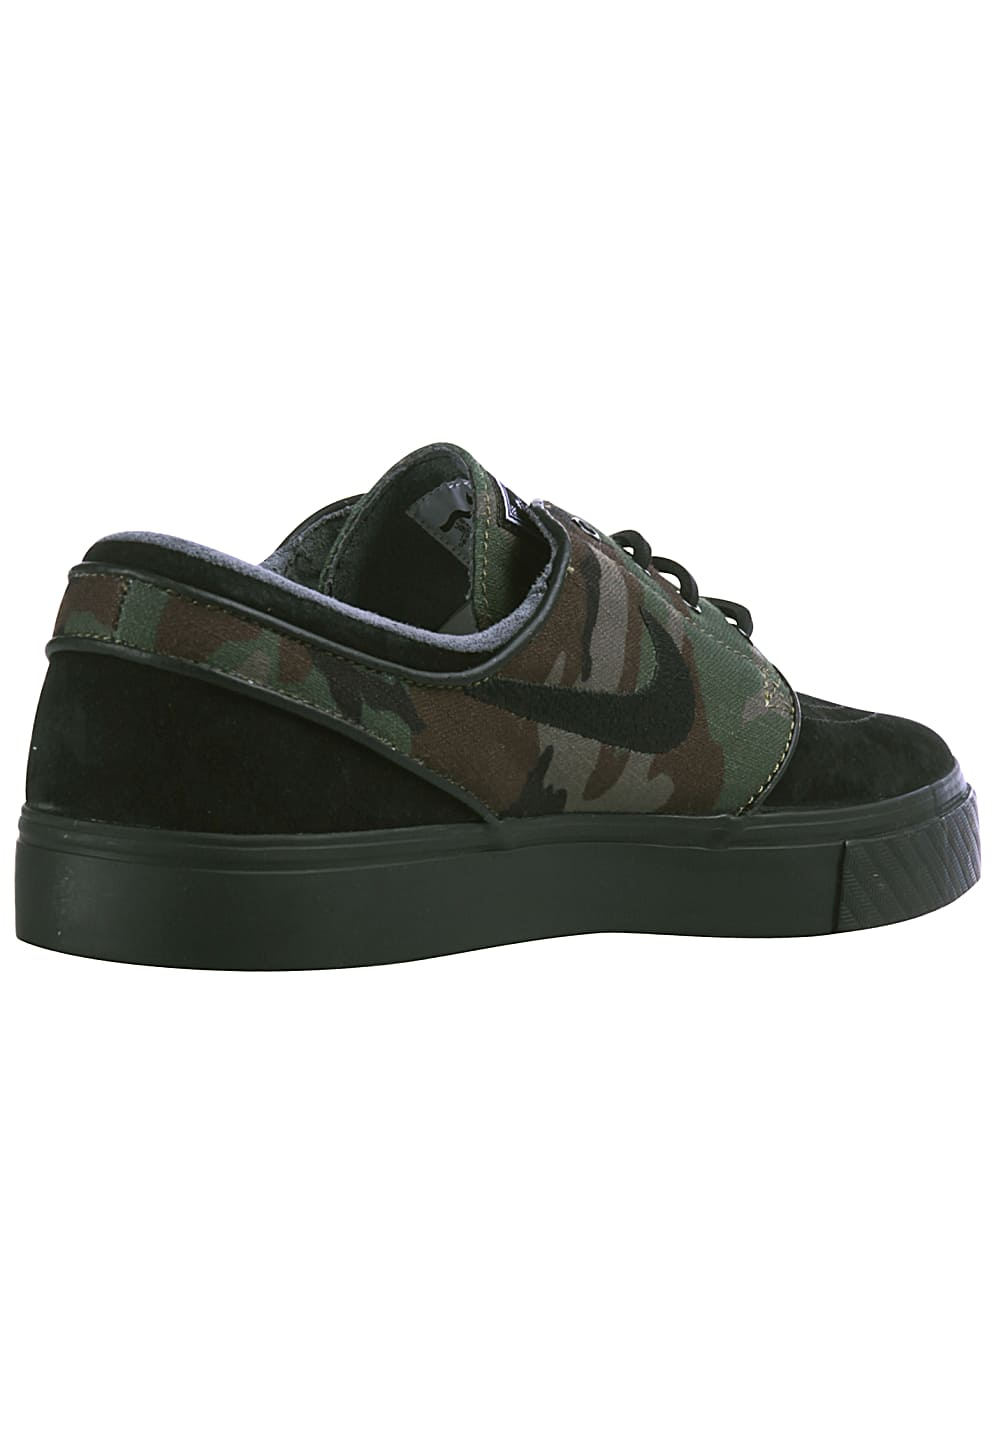 huge discount f6622 534a3 NIKE SB Zoom Stefan Janoski OG - Zapatillas - Negro - Planet